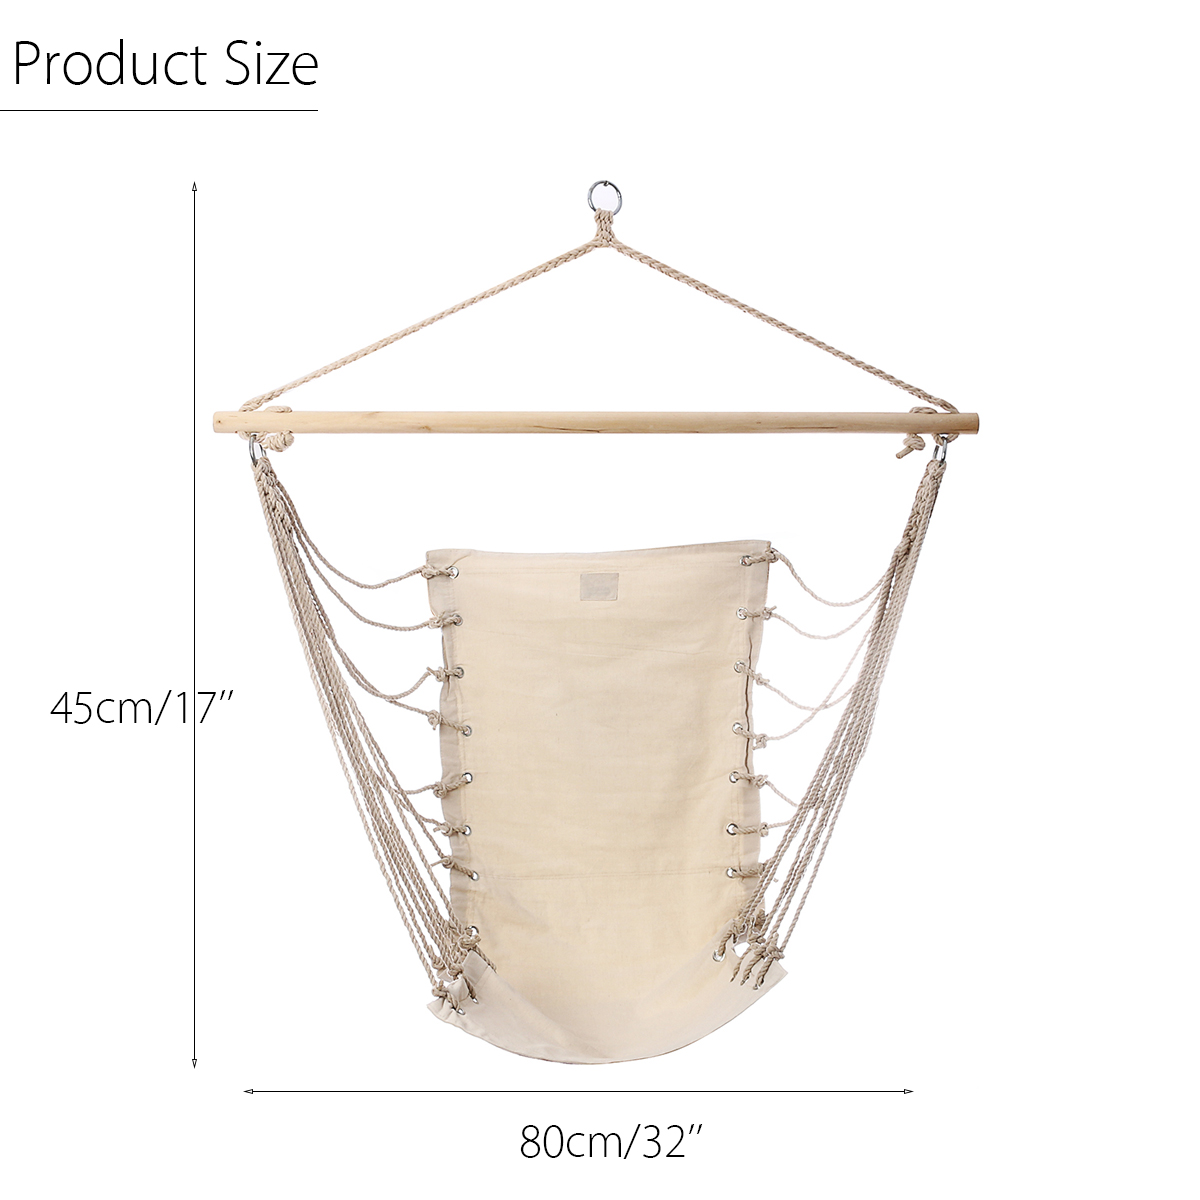 Transportable Backyard Hanging Cotton Hammock Chair Tenting Single Swing Seat Stress-free Furnishings For Baby Grownup Swinging Security Chair HTB1FmBfiIIrBKNjSZK9q6ygoVXal